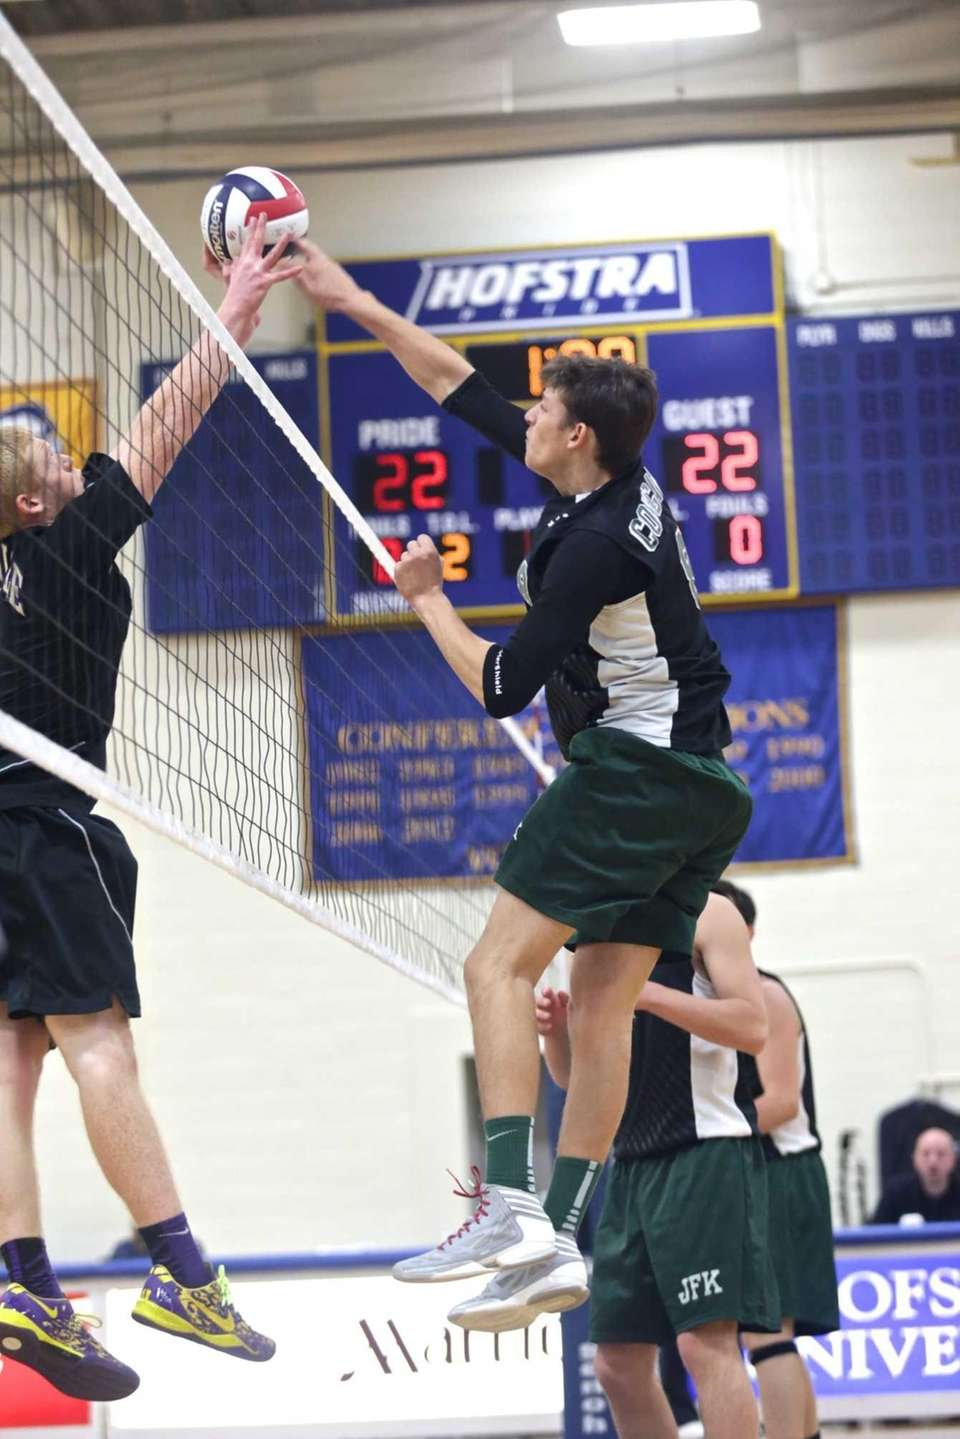 Bellmore JFK's Justin Feigles scores a point against